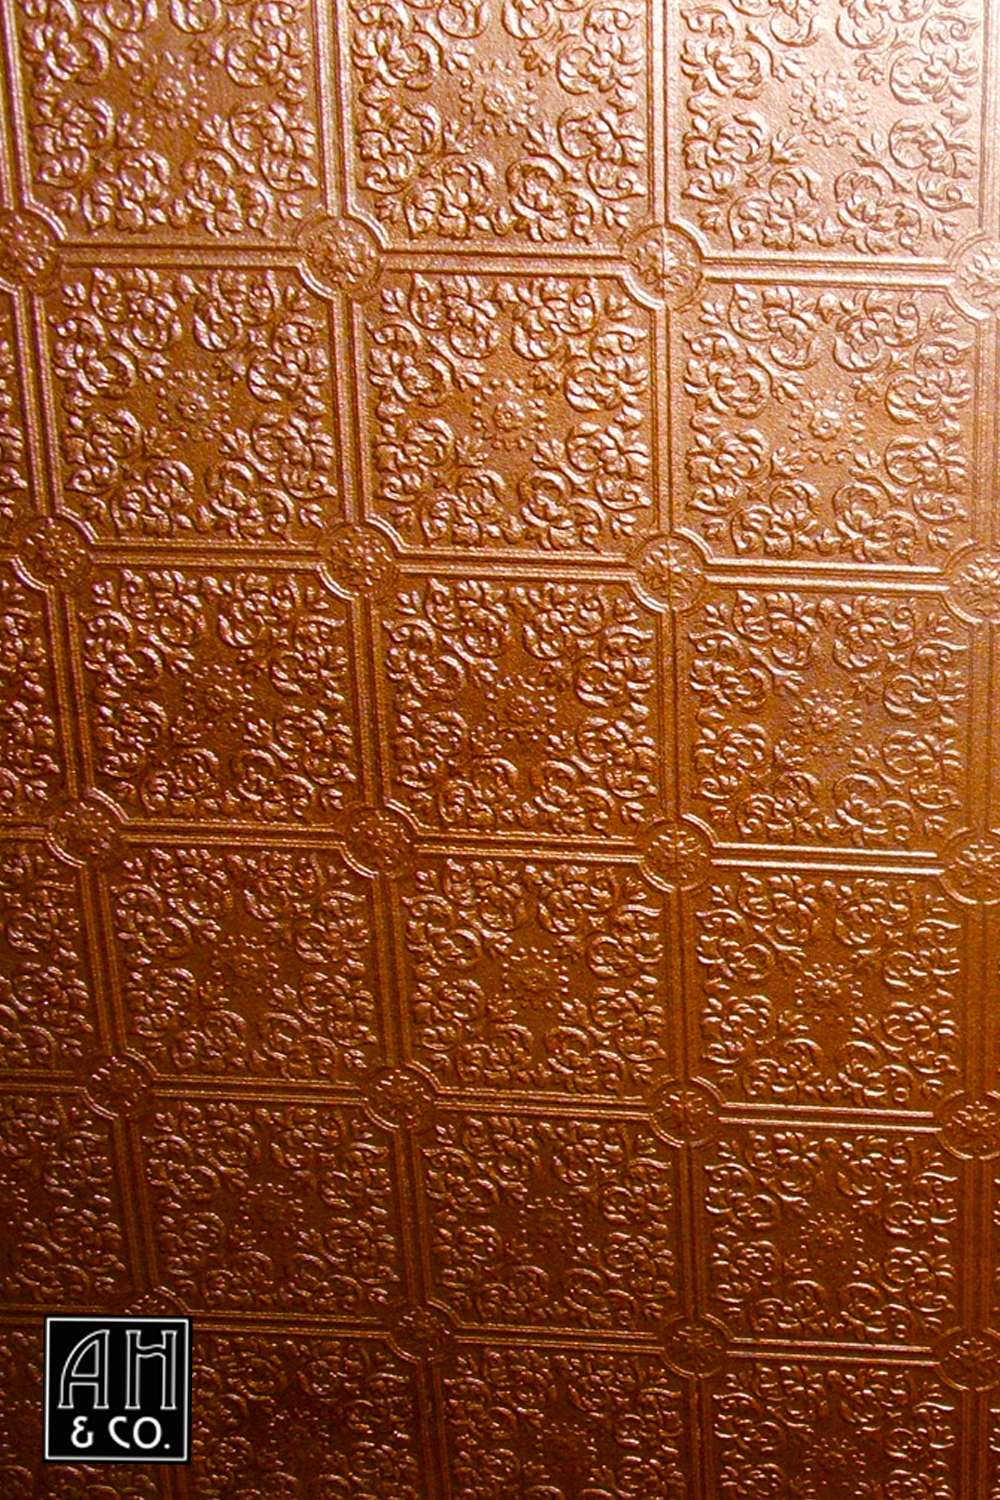 Ceiling finishes ah co decorative artisans detail paintable tile pattern paper in a faux finished antique metallic copper dailygadgetfo Image collections